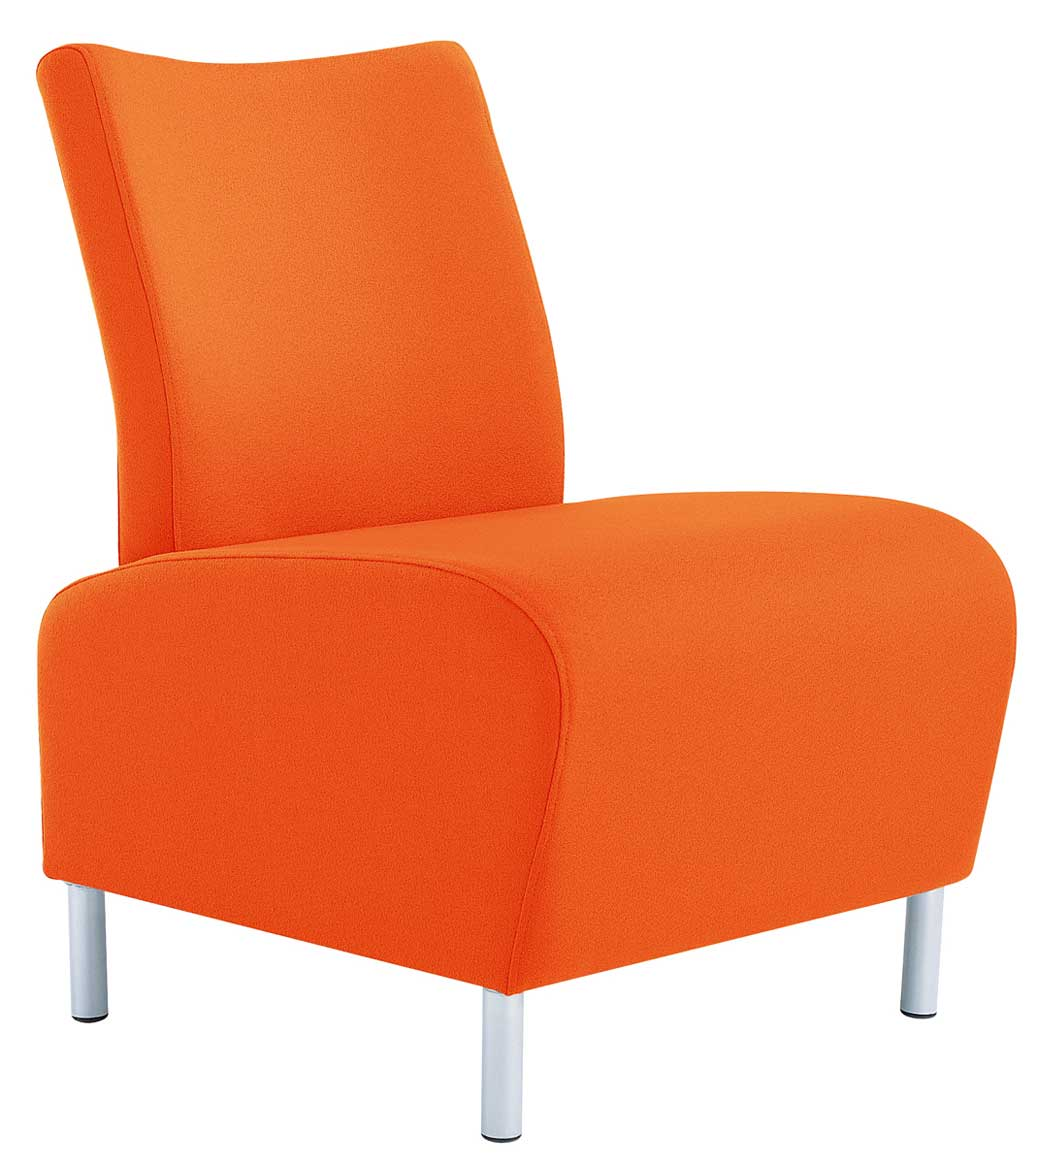 Modern Orange Chair Reception Office Chairs For Guest